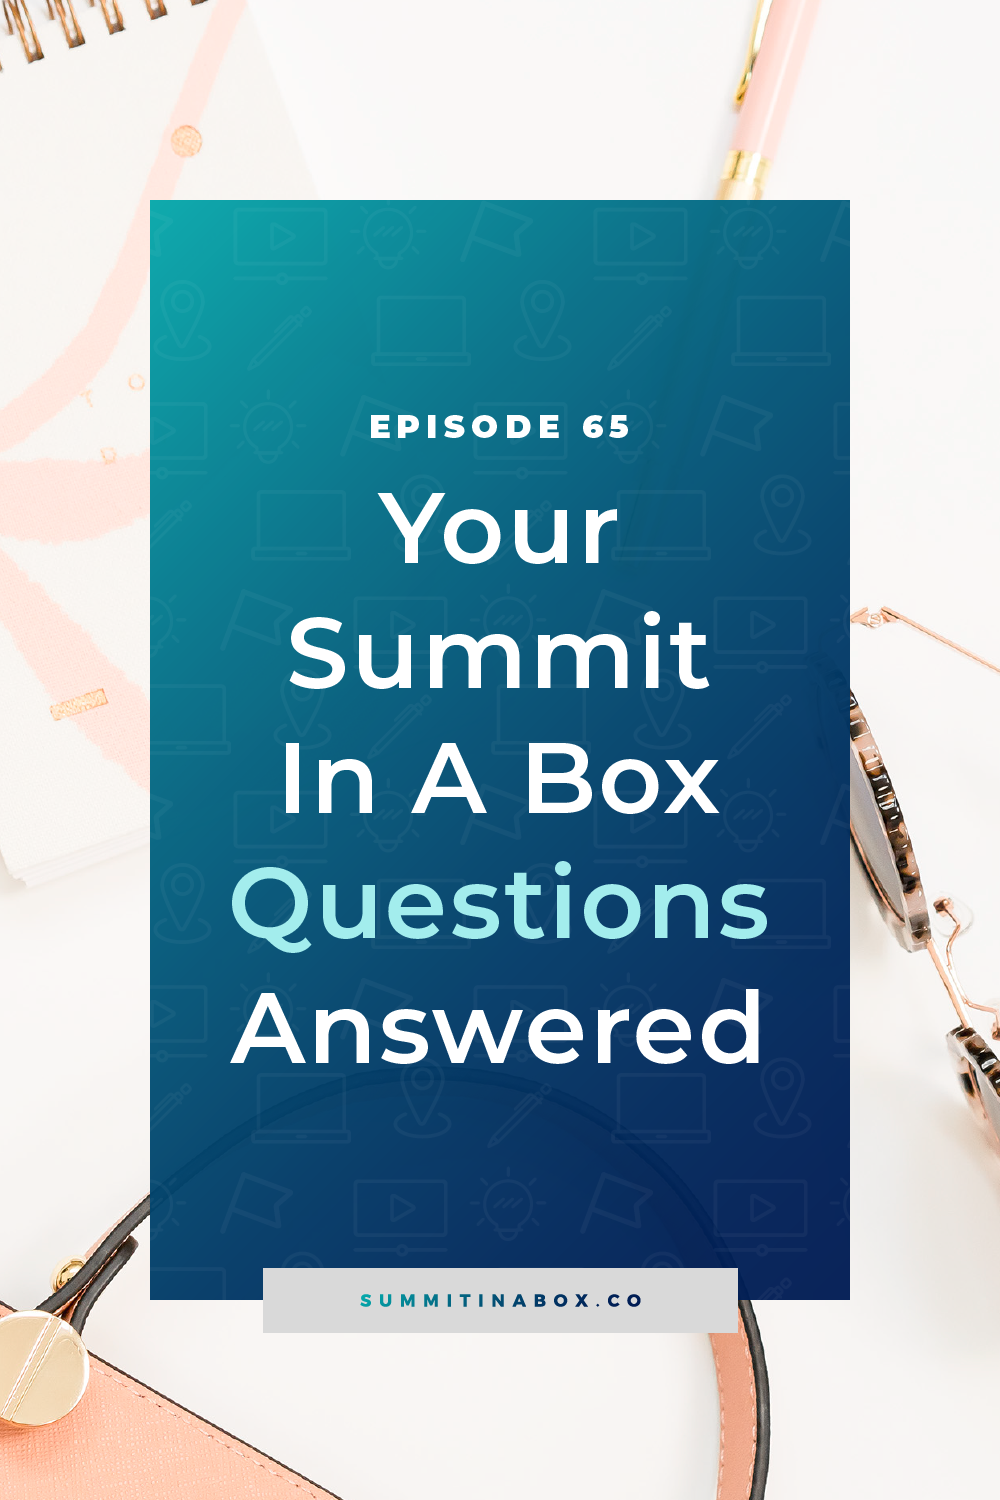 Have questions about the Summit in a Box program? I have answers for you today including how the templates work, whether you need an email list, and more.